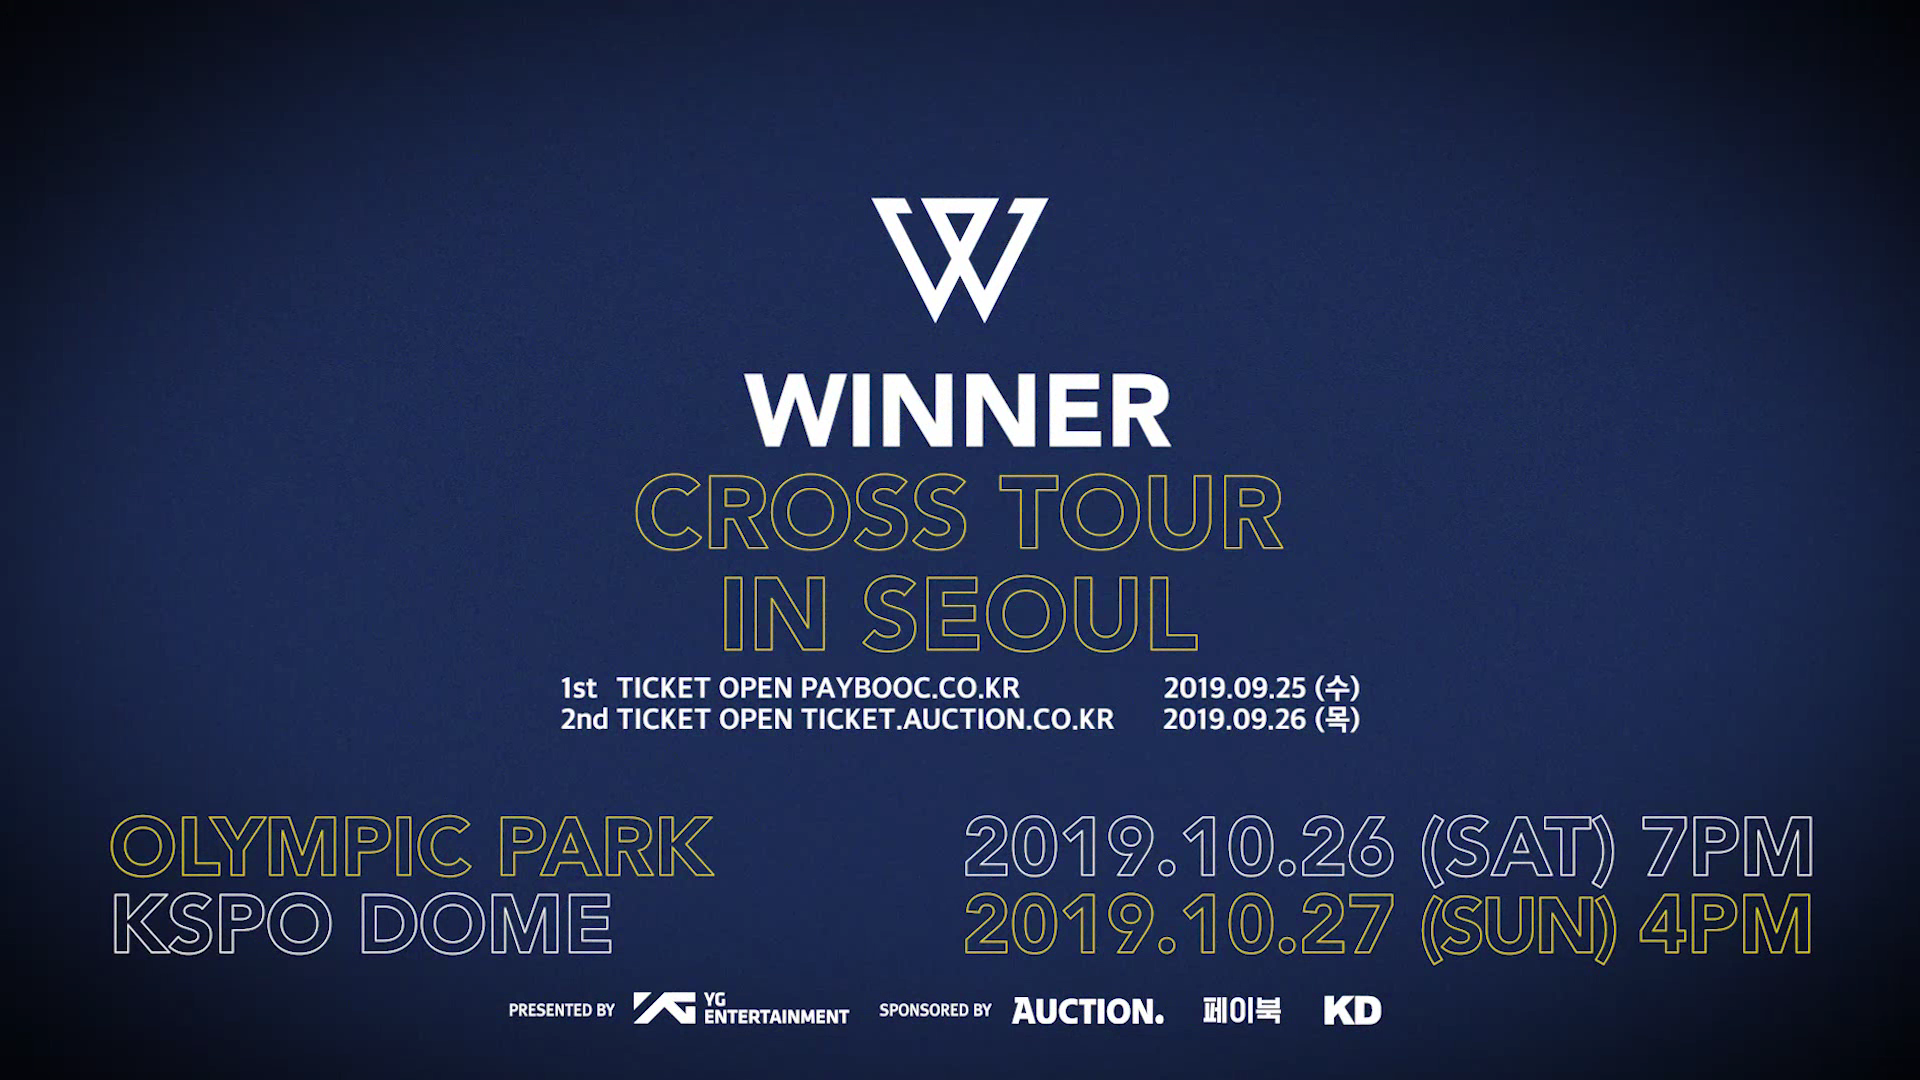 WINNER - 'CROSS TOUR IN SEOUL' MESSAGE VIDEO